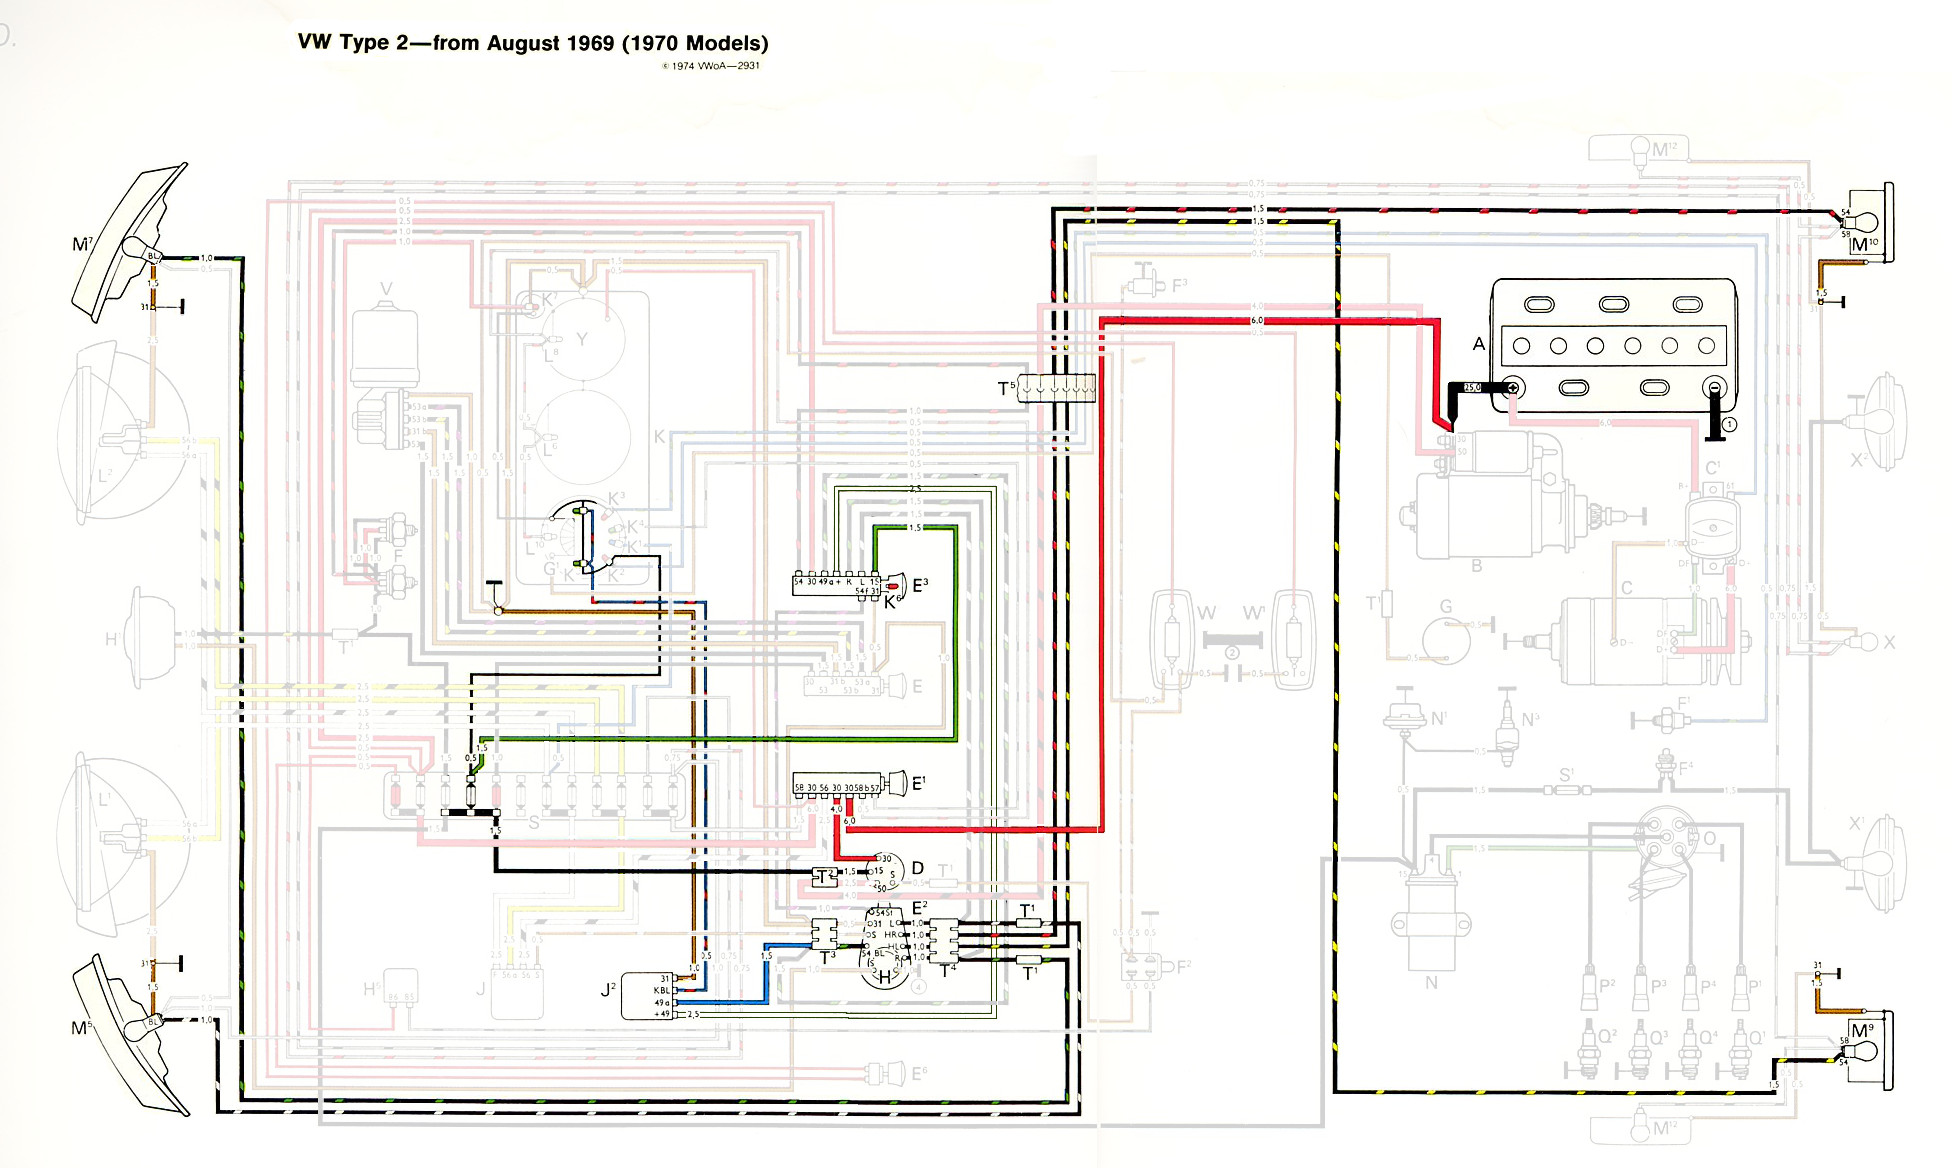 1970bus_signals 1970 vw beetle wiring diagram 1967 vw beetle wiring diagram Wiring Harness Diagram at gsmportal.co